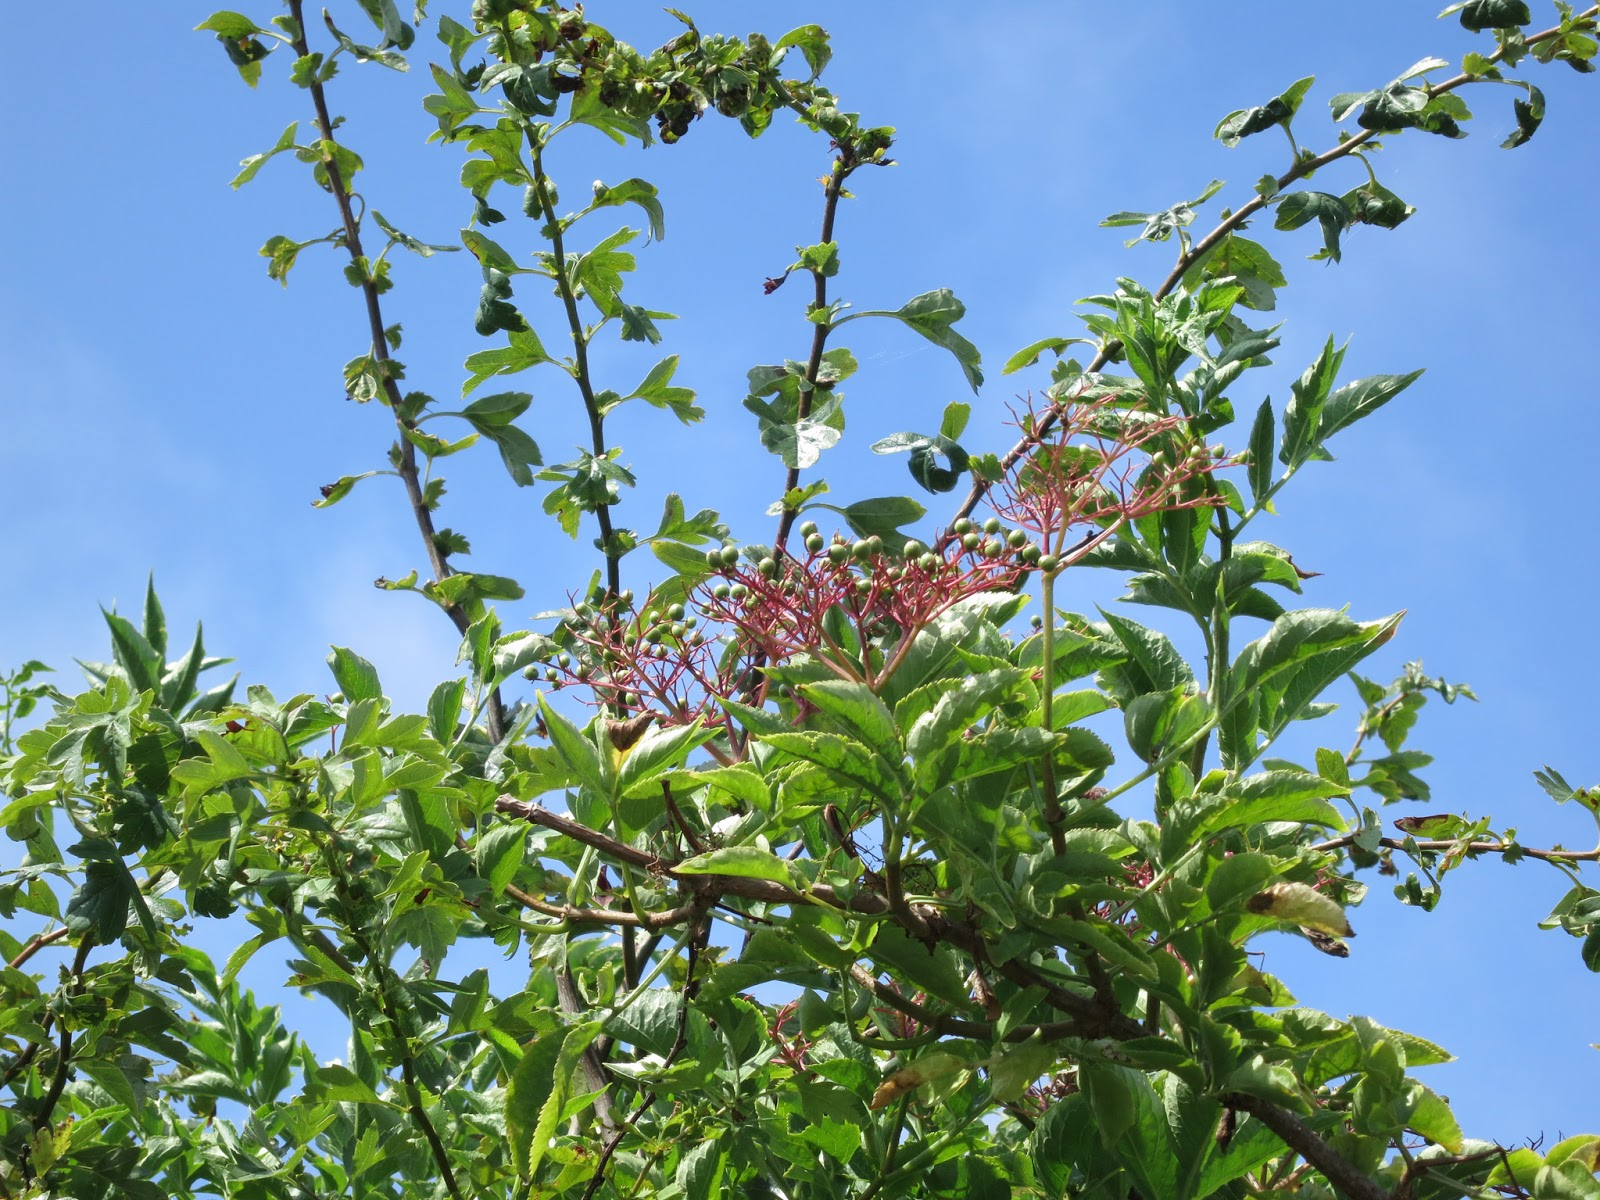 Unripe elder berries against a blue sky with hawthorn leaves